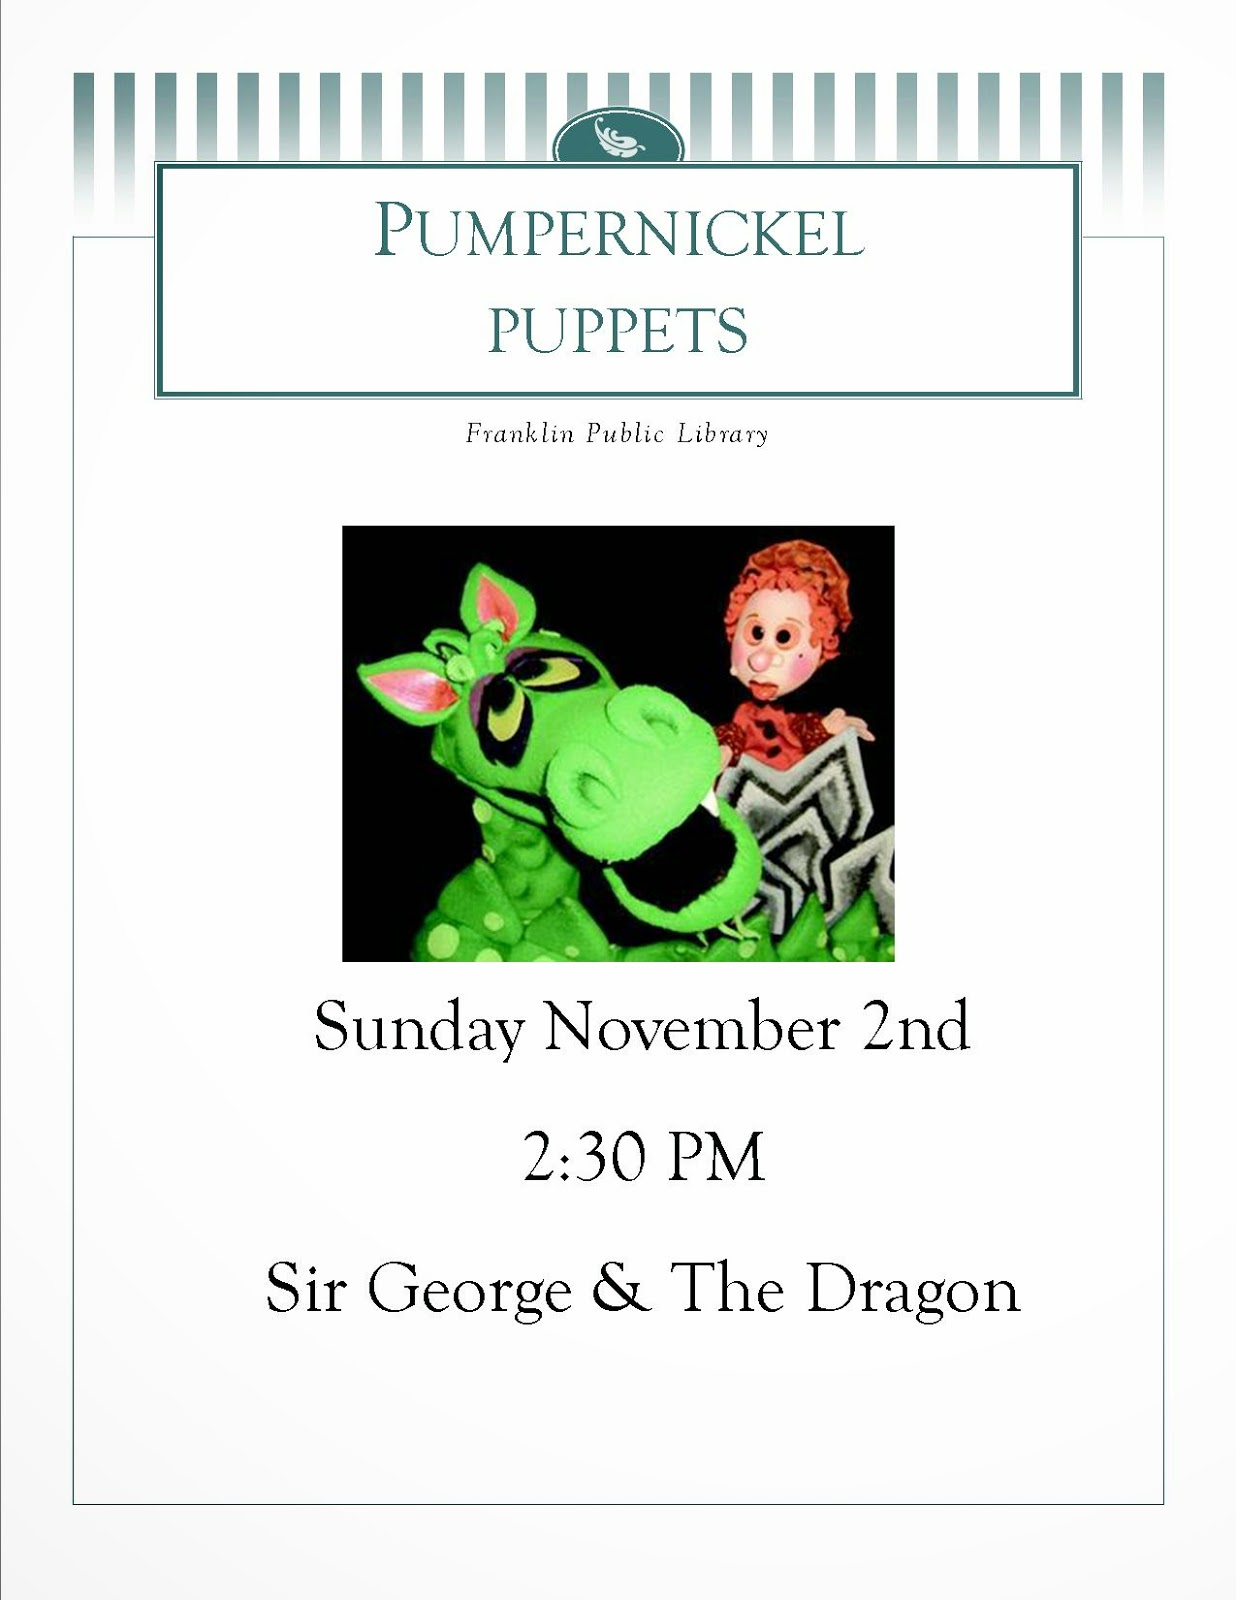 Pumpernickel Puppets